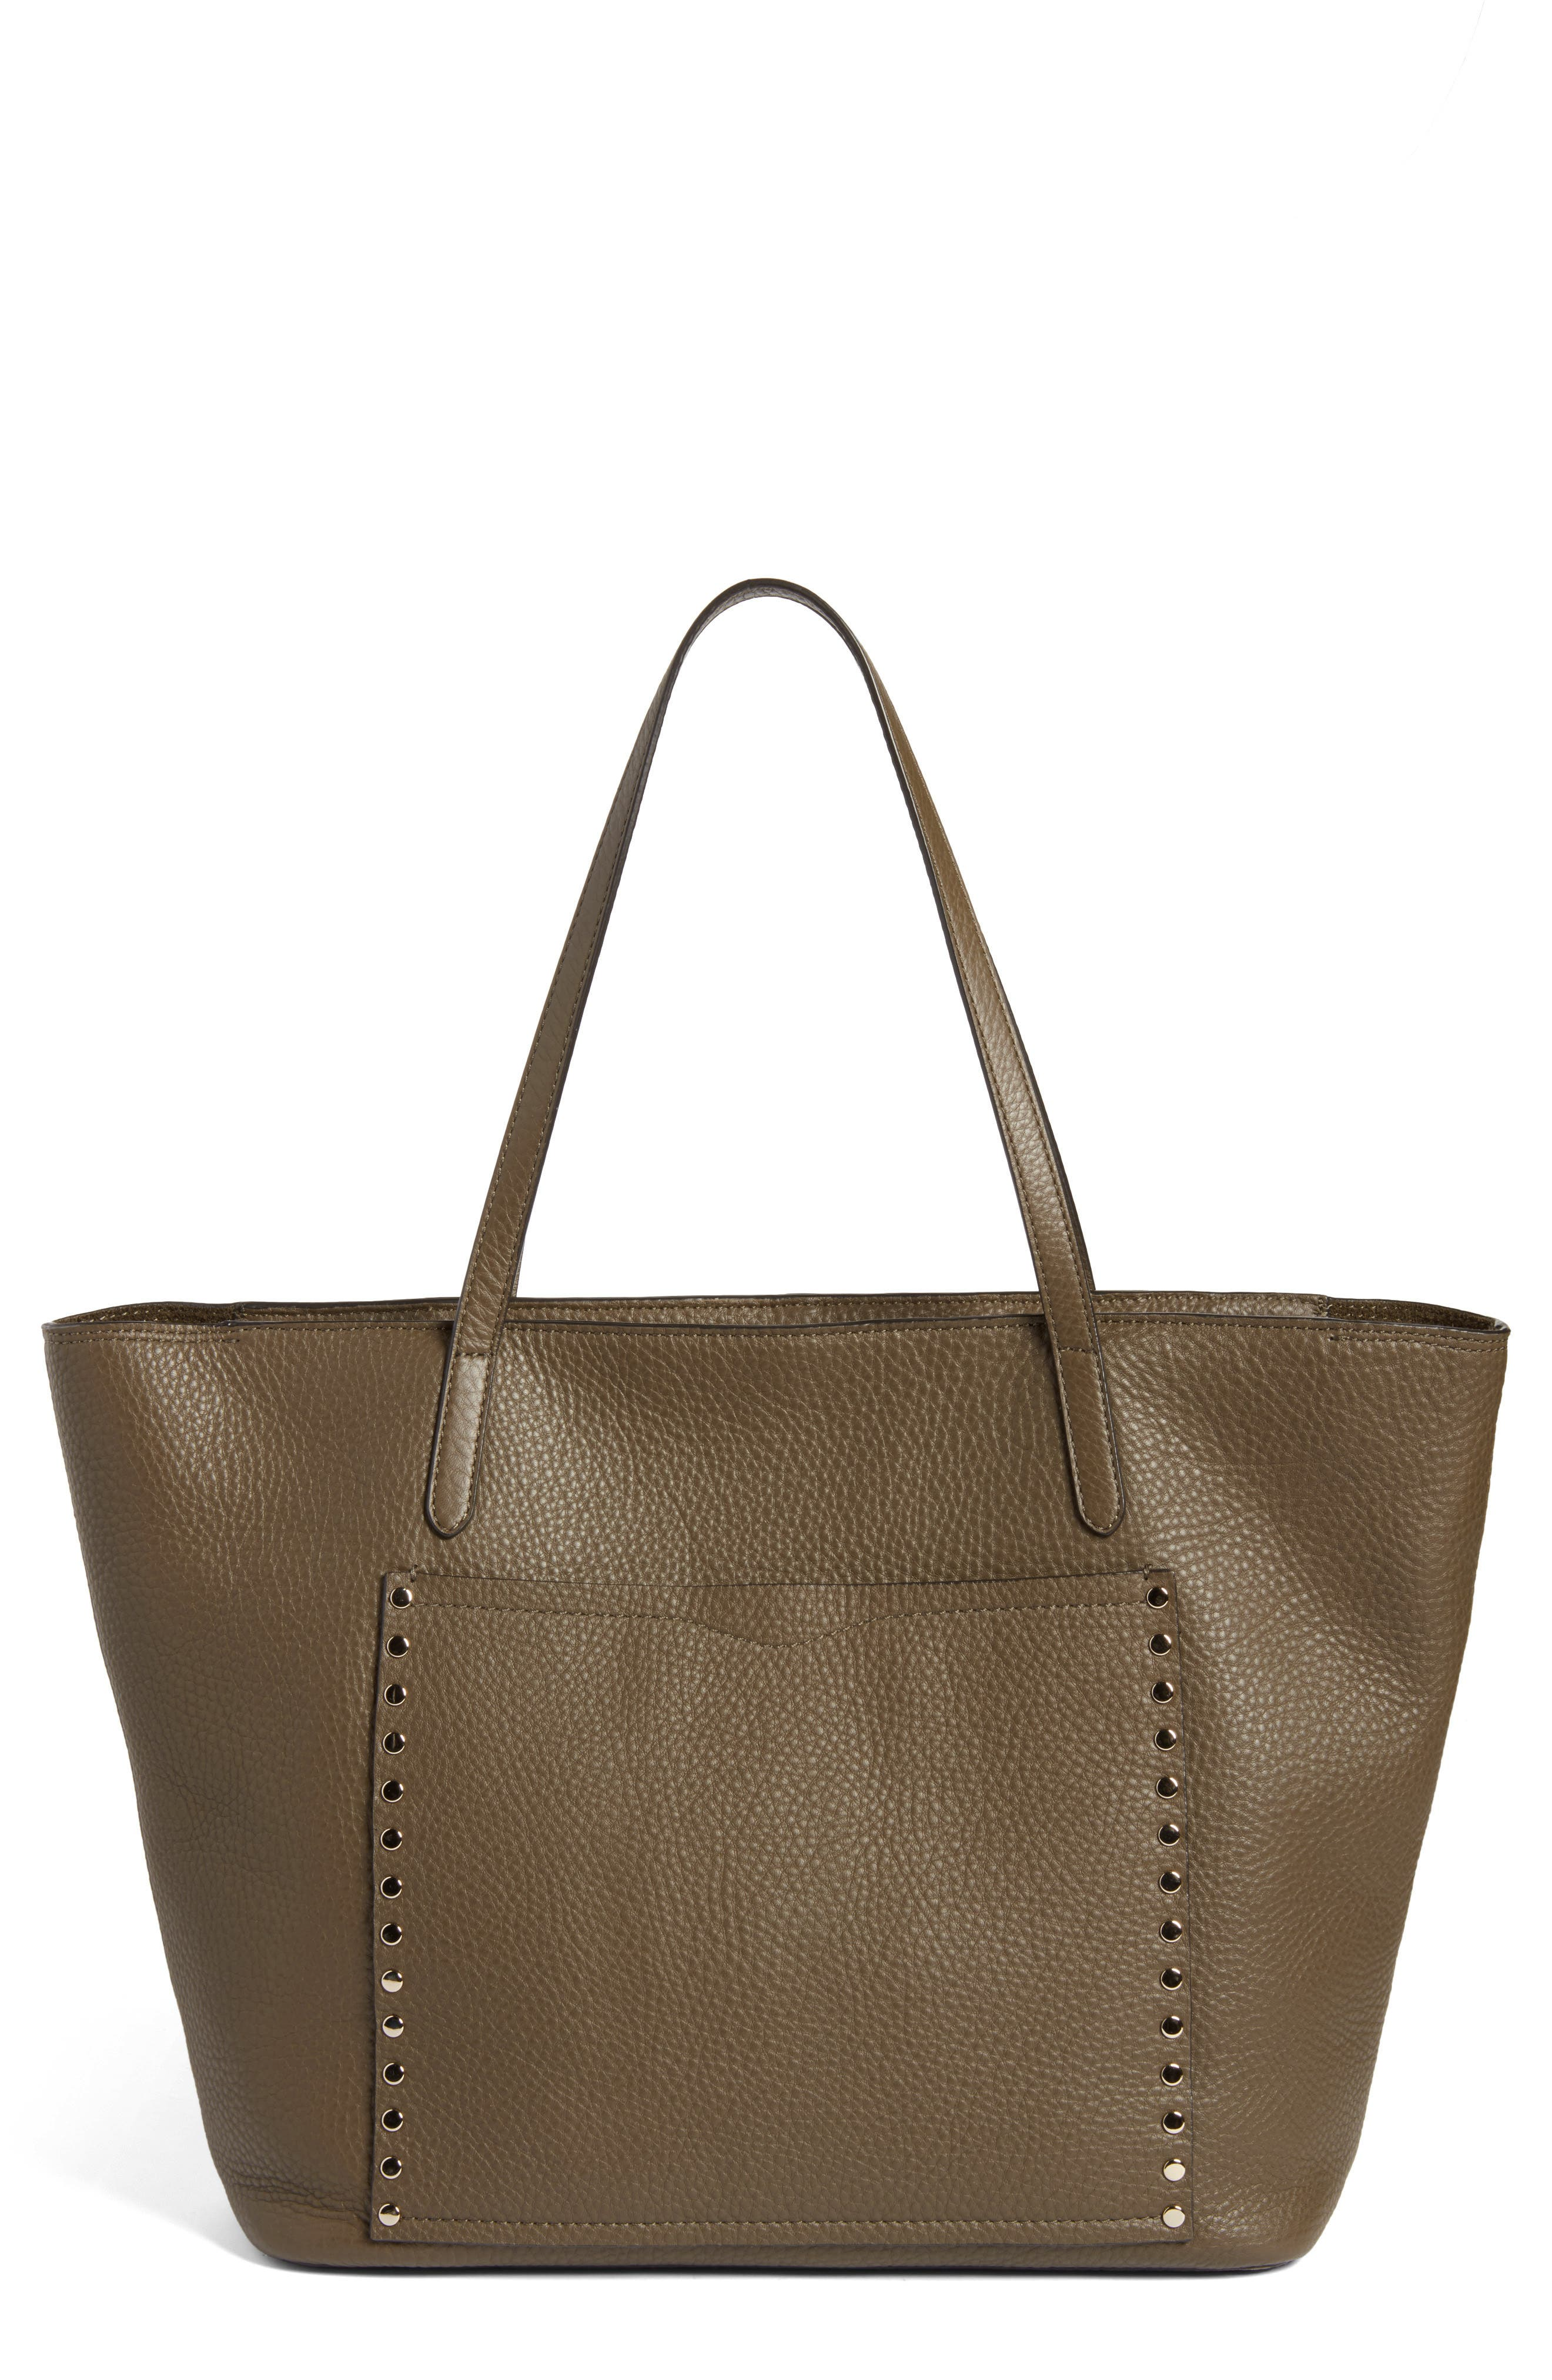 Main Image - Rebecca Minkoff Unlined Front Pocket Leather Tote (Nordstrom Exclusive)